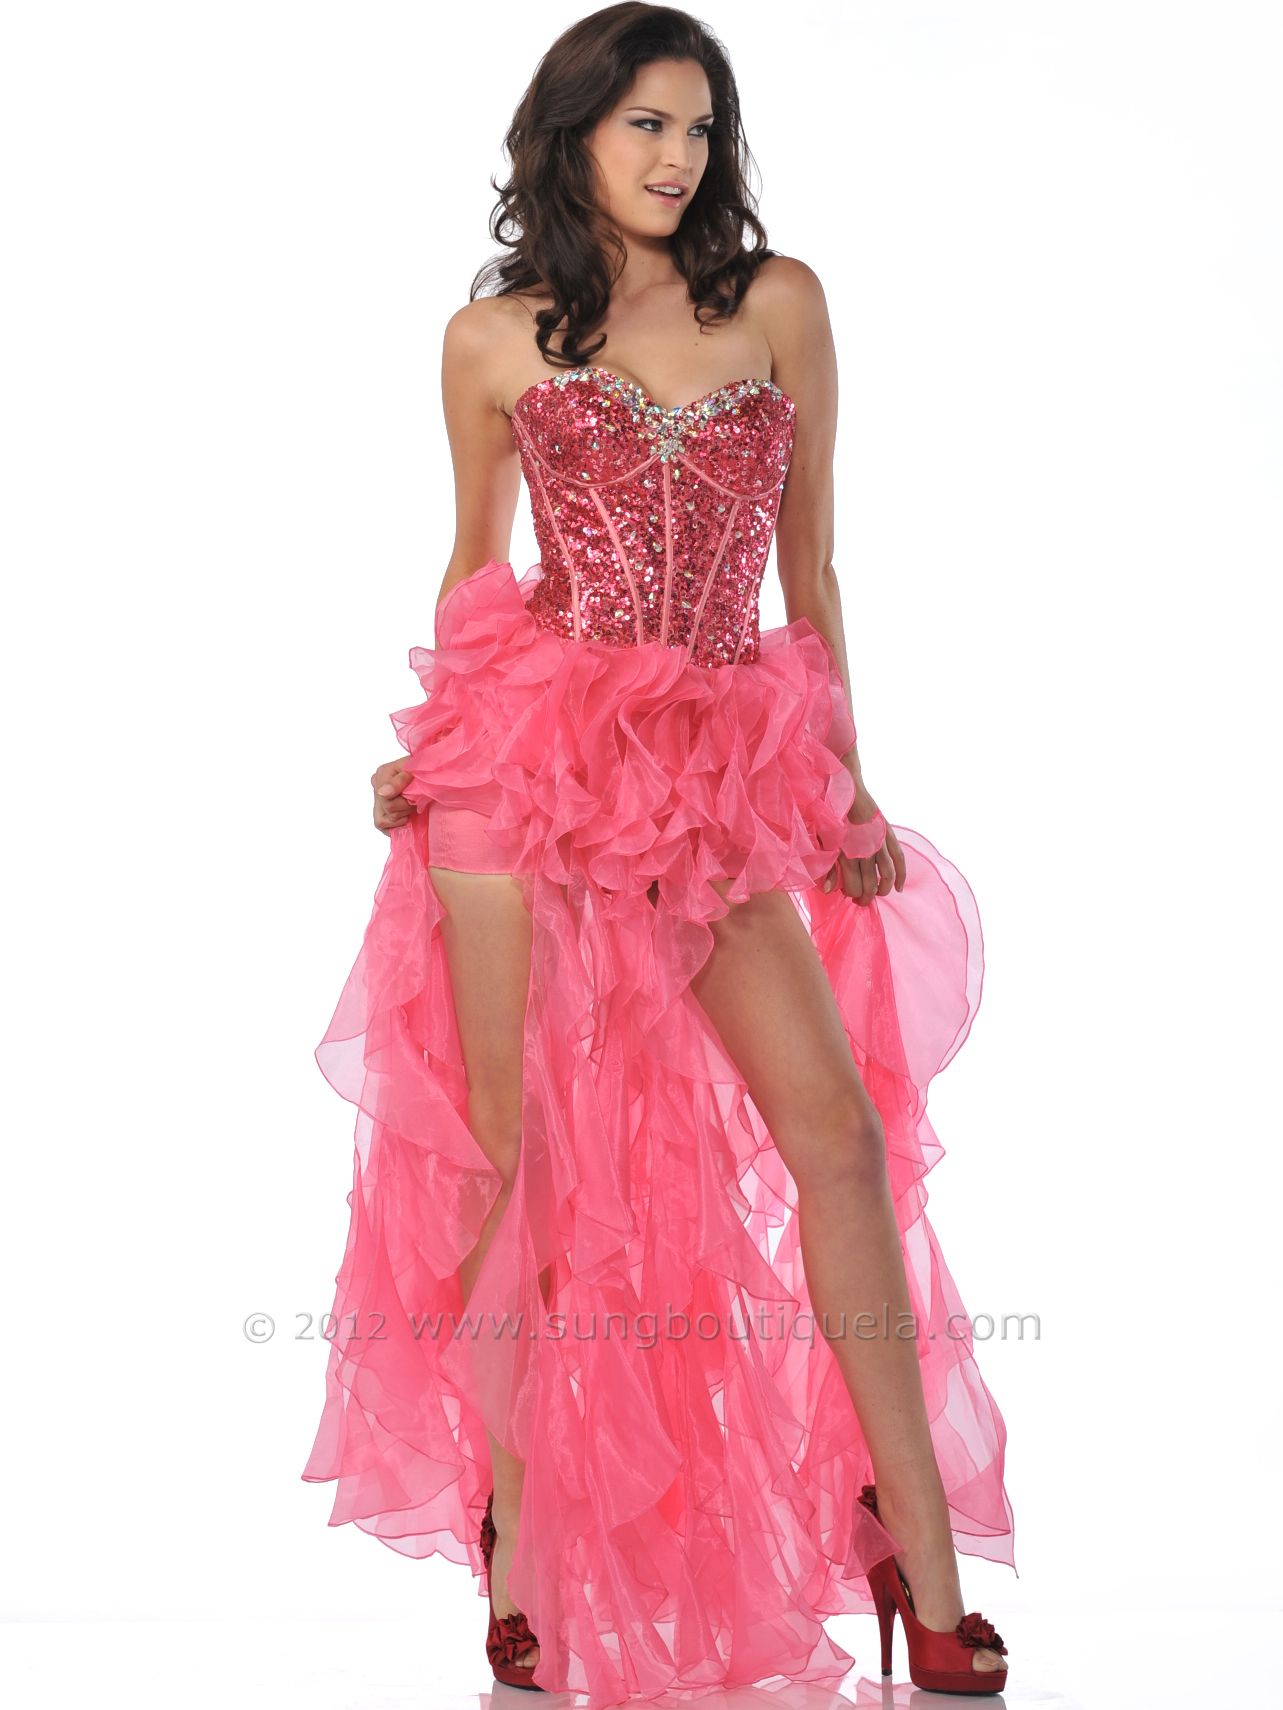 Sequin Corset Top Prom Dress with Ruffle Hem. Get yours today at ...